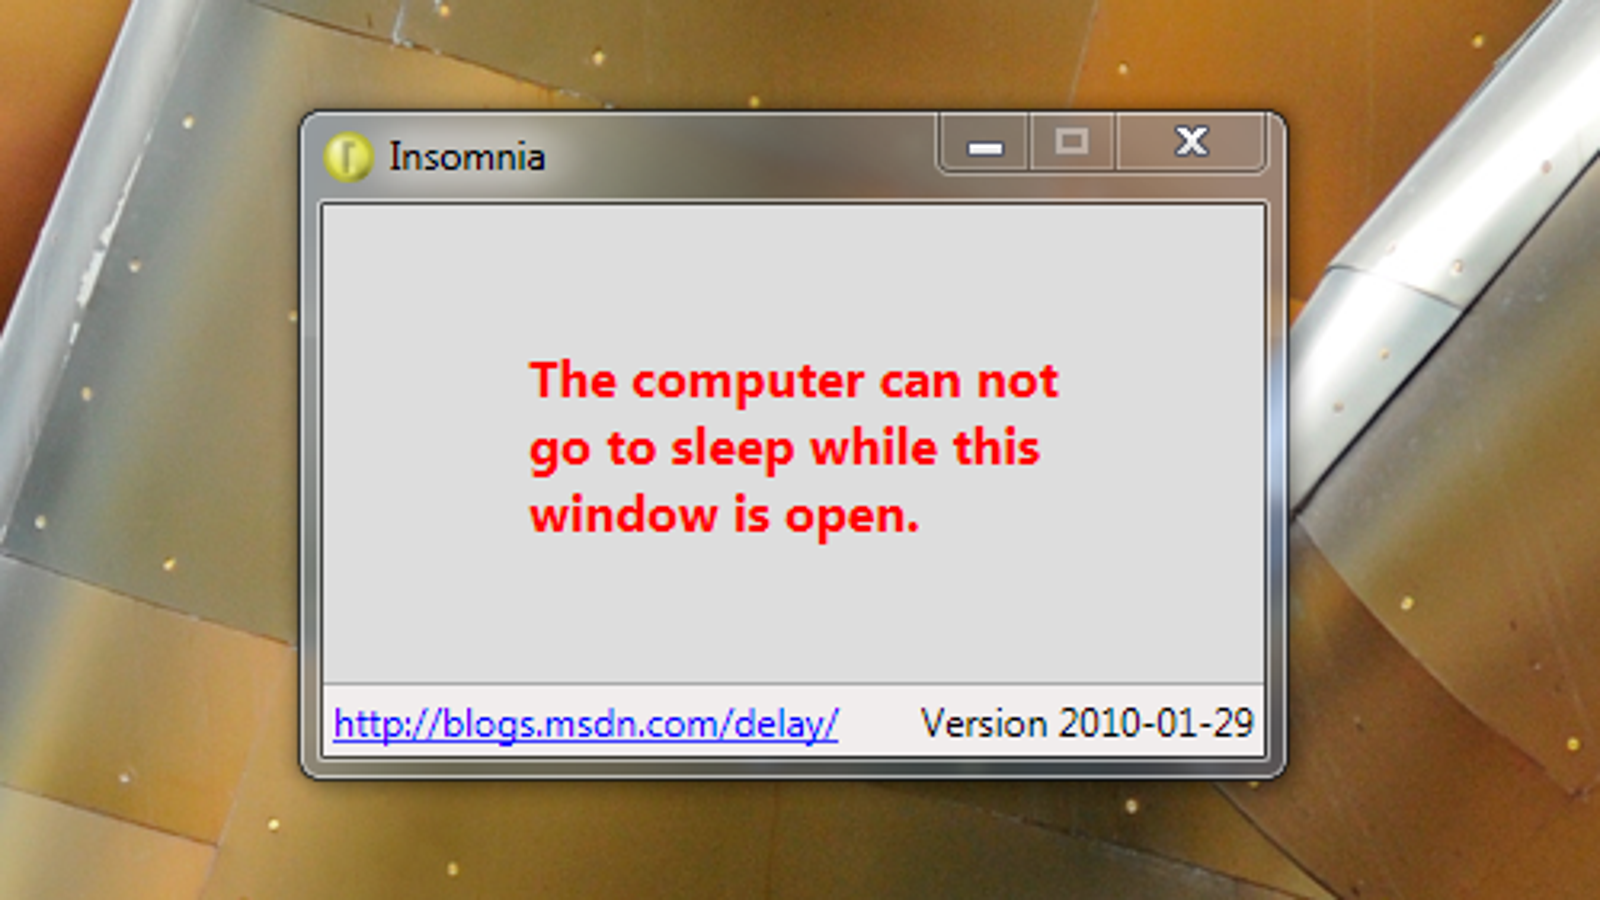 Insomnia Keeps Your Windows PC from Going to Sleep